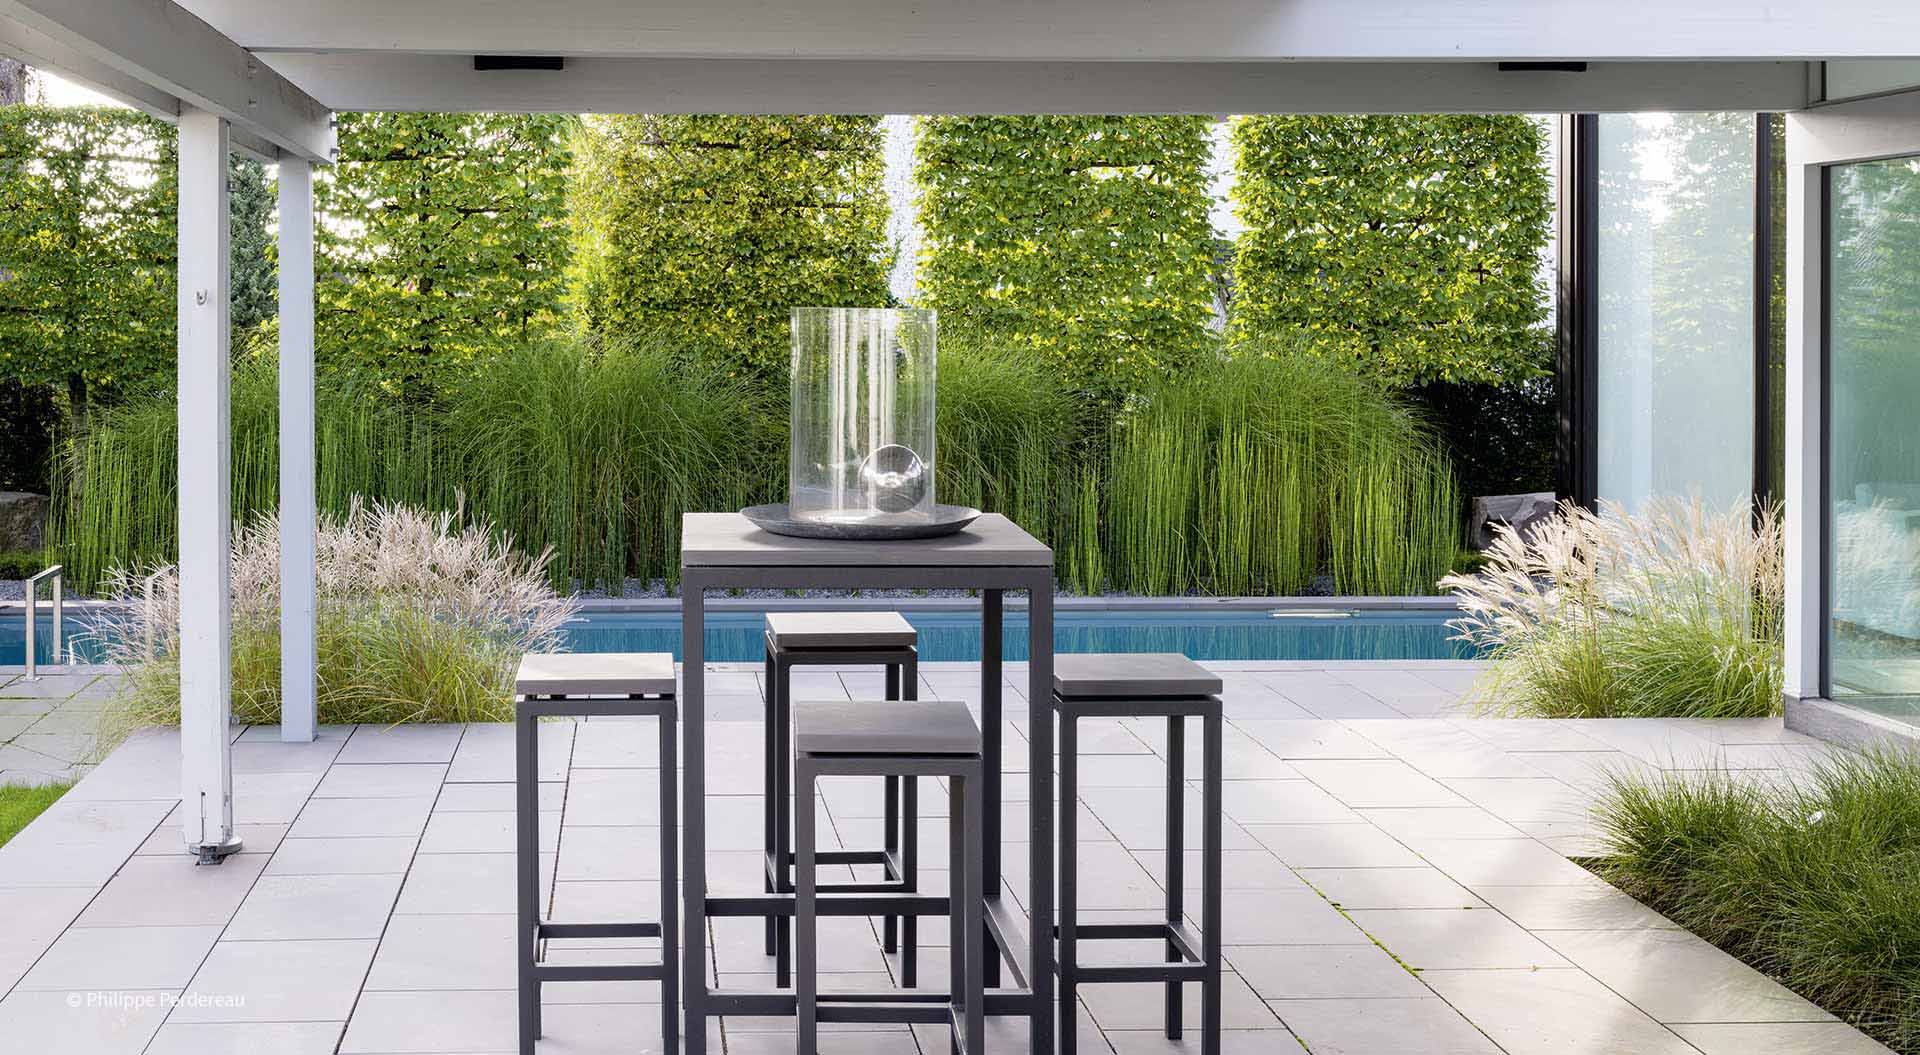 Big bright patio with a small pool and many grasses